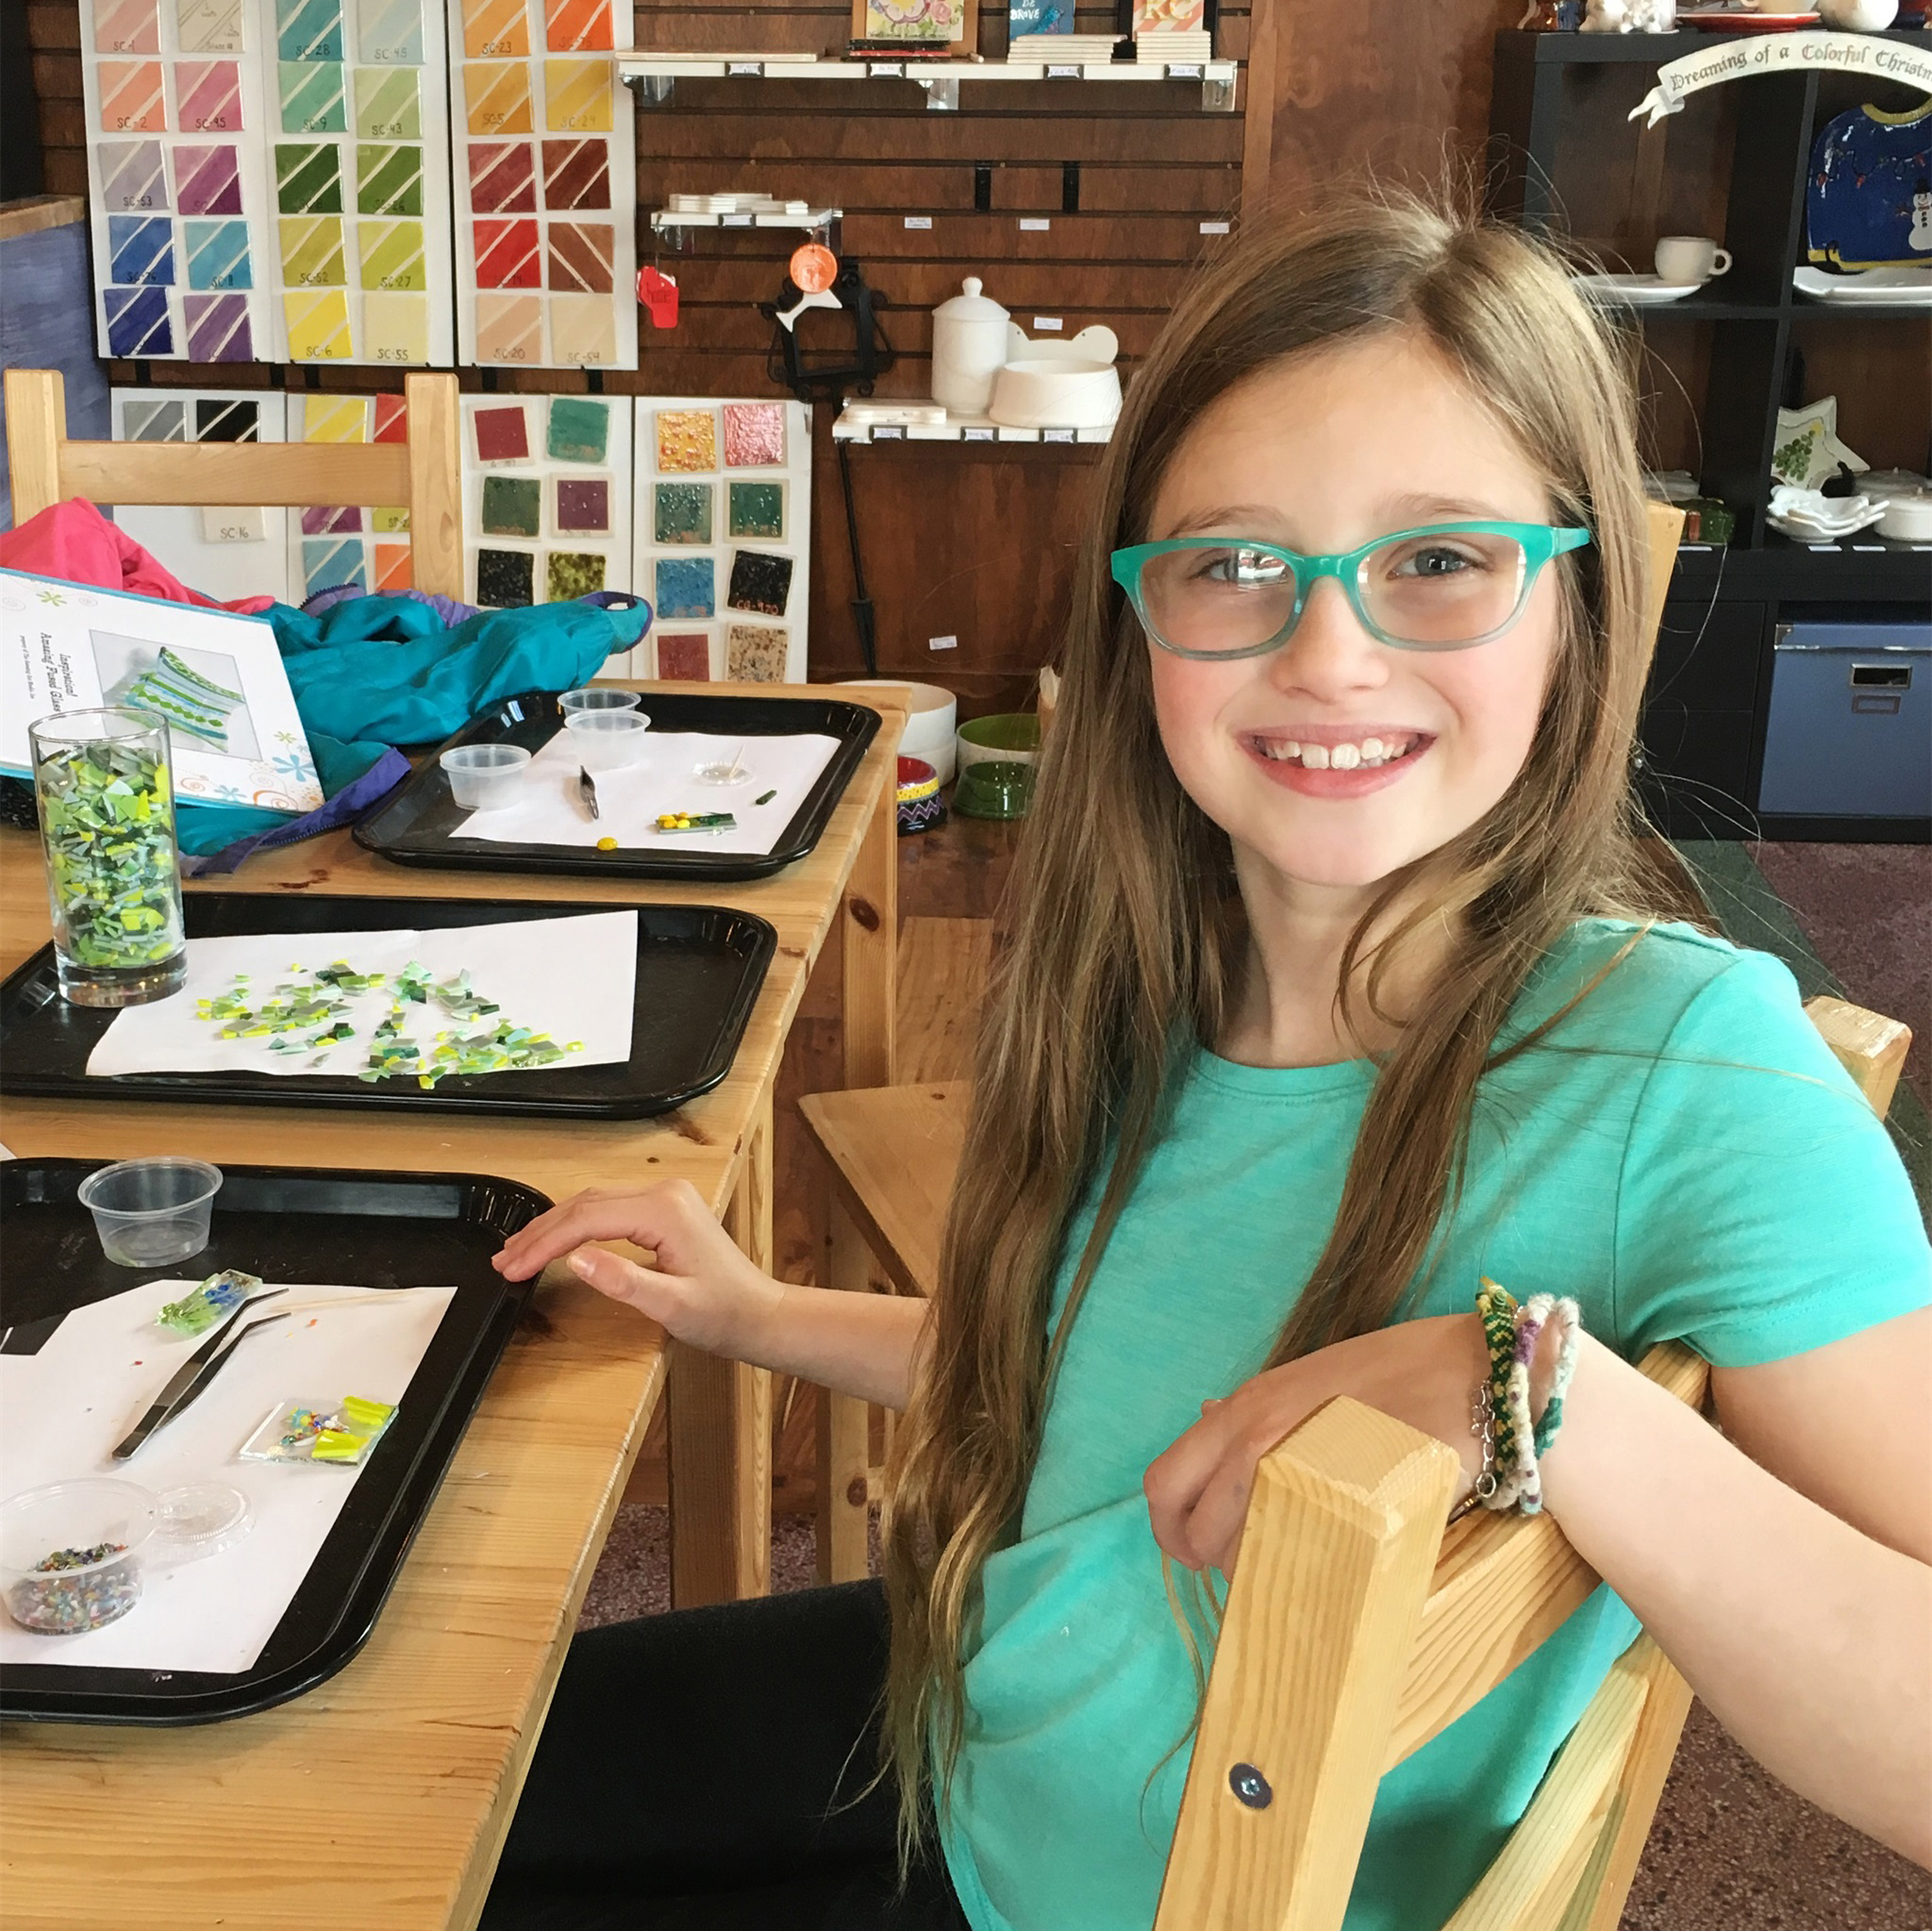 Charlotte is all smiles as she works on stained glass at Earth Goods in Minocqua. Kim Johnson photo